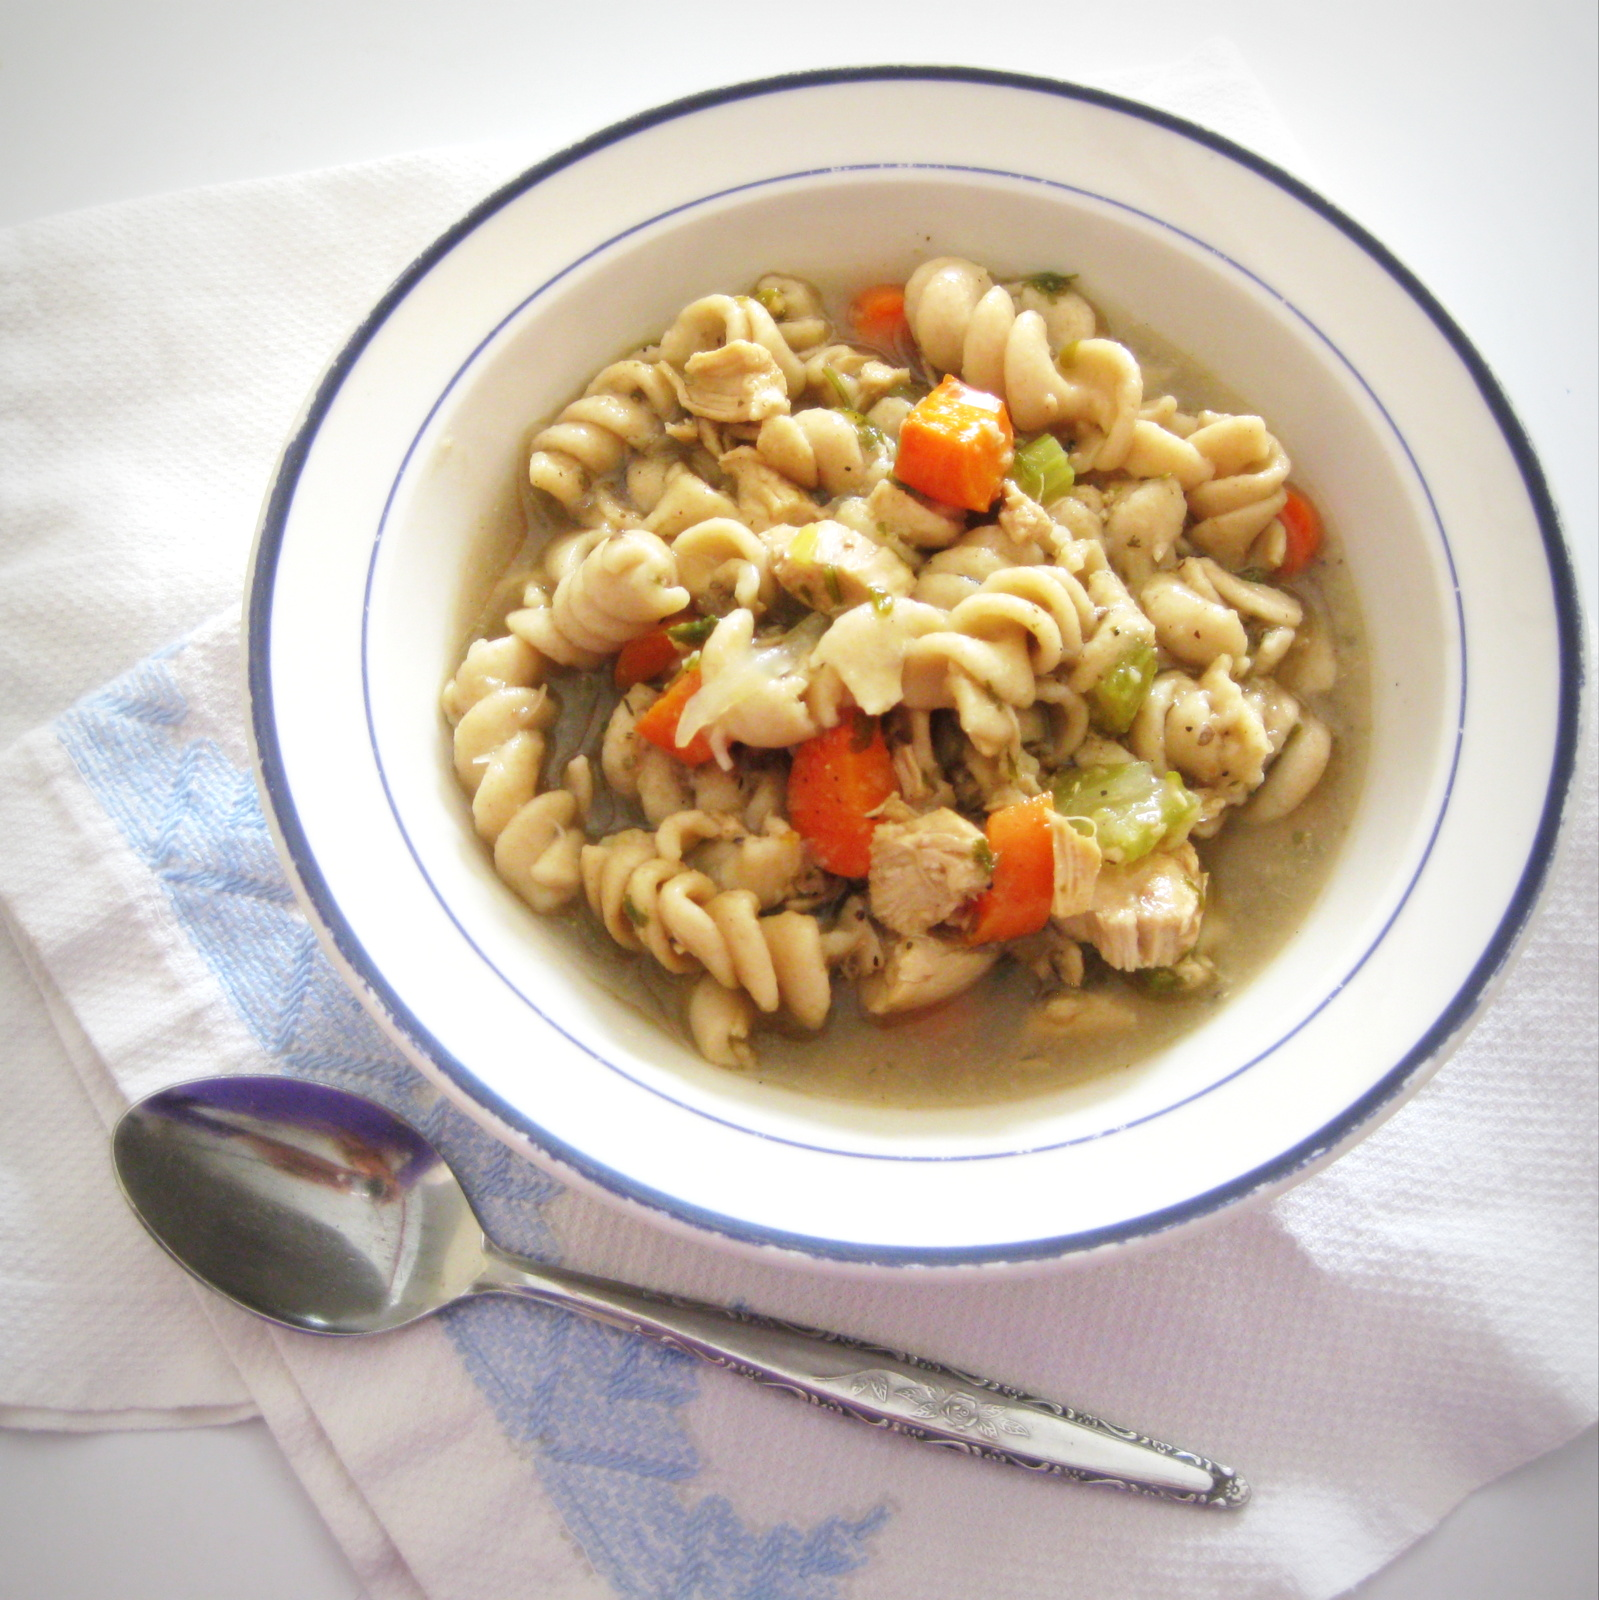 Warm, soothing, and delicious--this Chicken Noodle Soup is perfect for cold winter nights.